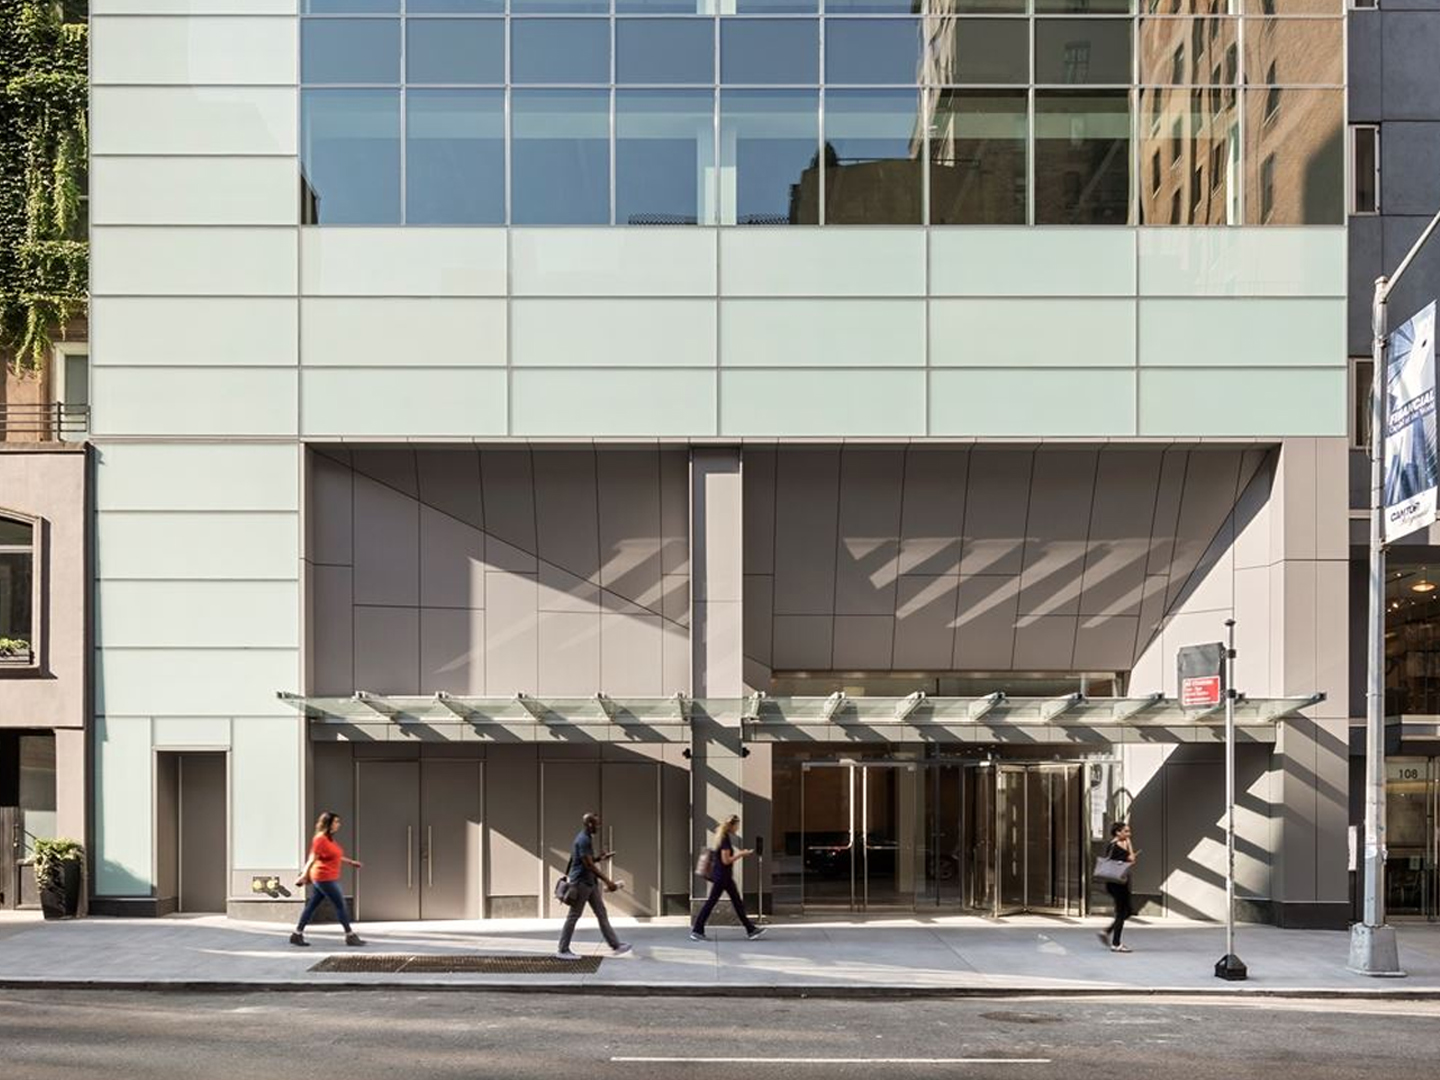 A New Generation of Medical Office Space Arrives on the Upper East Side - April 9, 2019 | Commercial ObserverThe lower blocks of the Upper East Side, by the Queensboro Bridge, have been known for hospitals and medical office space since 1865, when the German Hospital leased a swampy tract of land by East 77th Street for the uptown annex of its East Village hospital …Read More